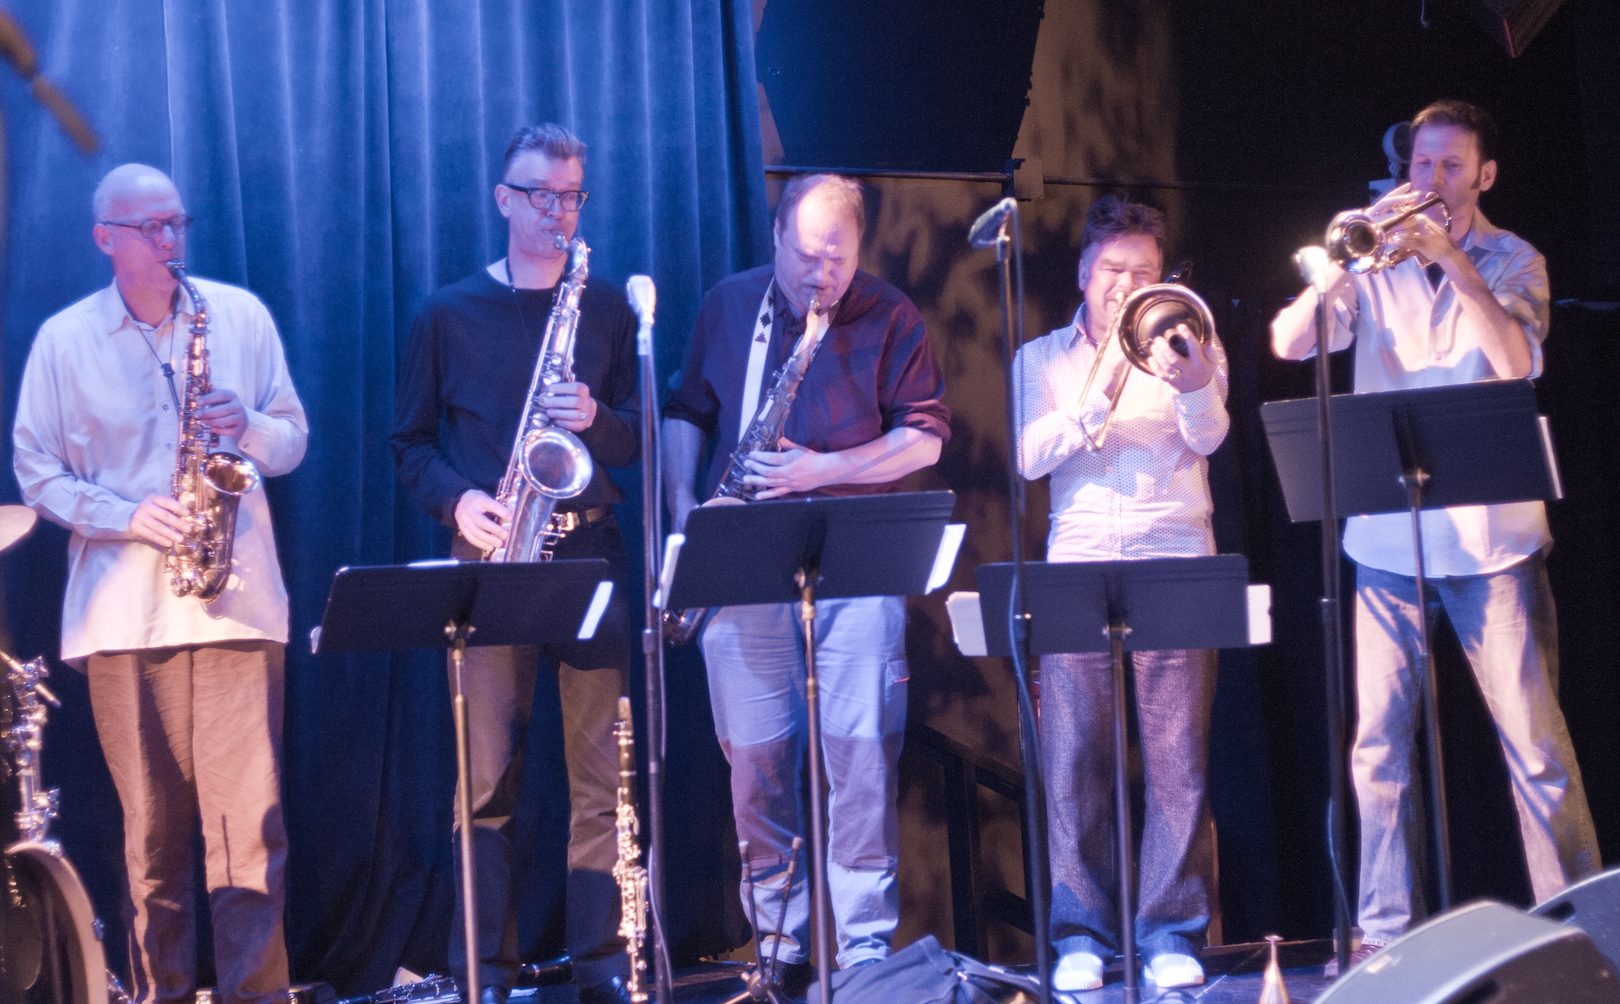 ICP Orchestra Horns with Moore, Baars, Delius, Wierbos and Heberer